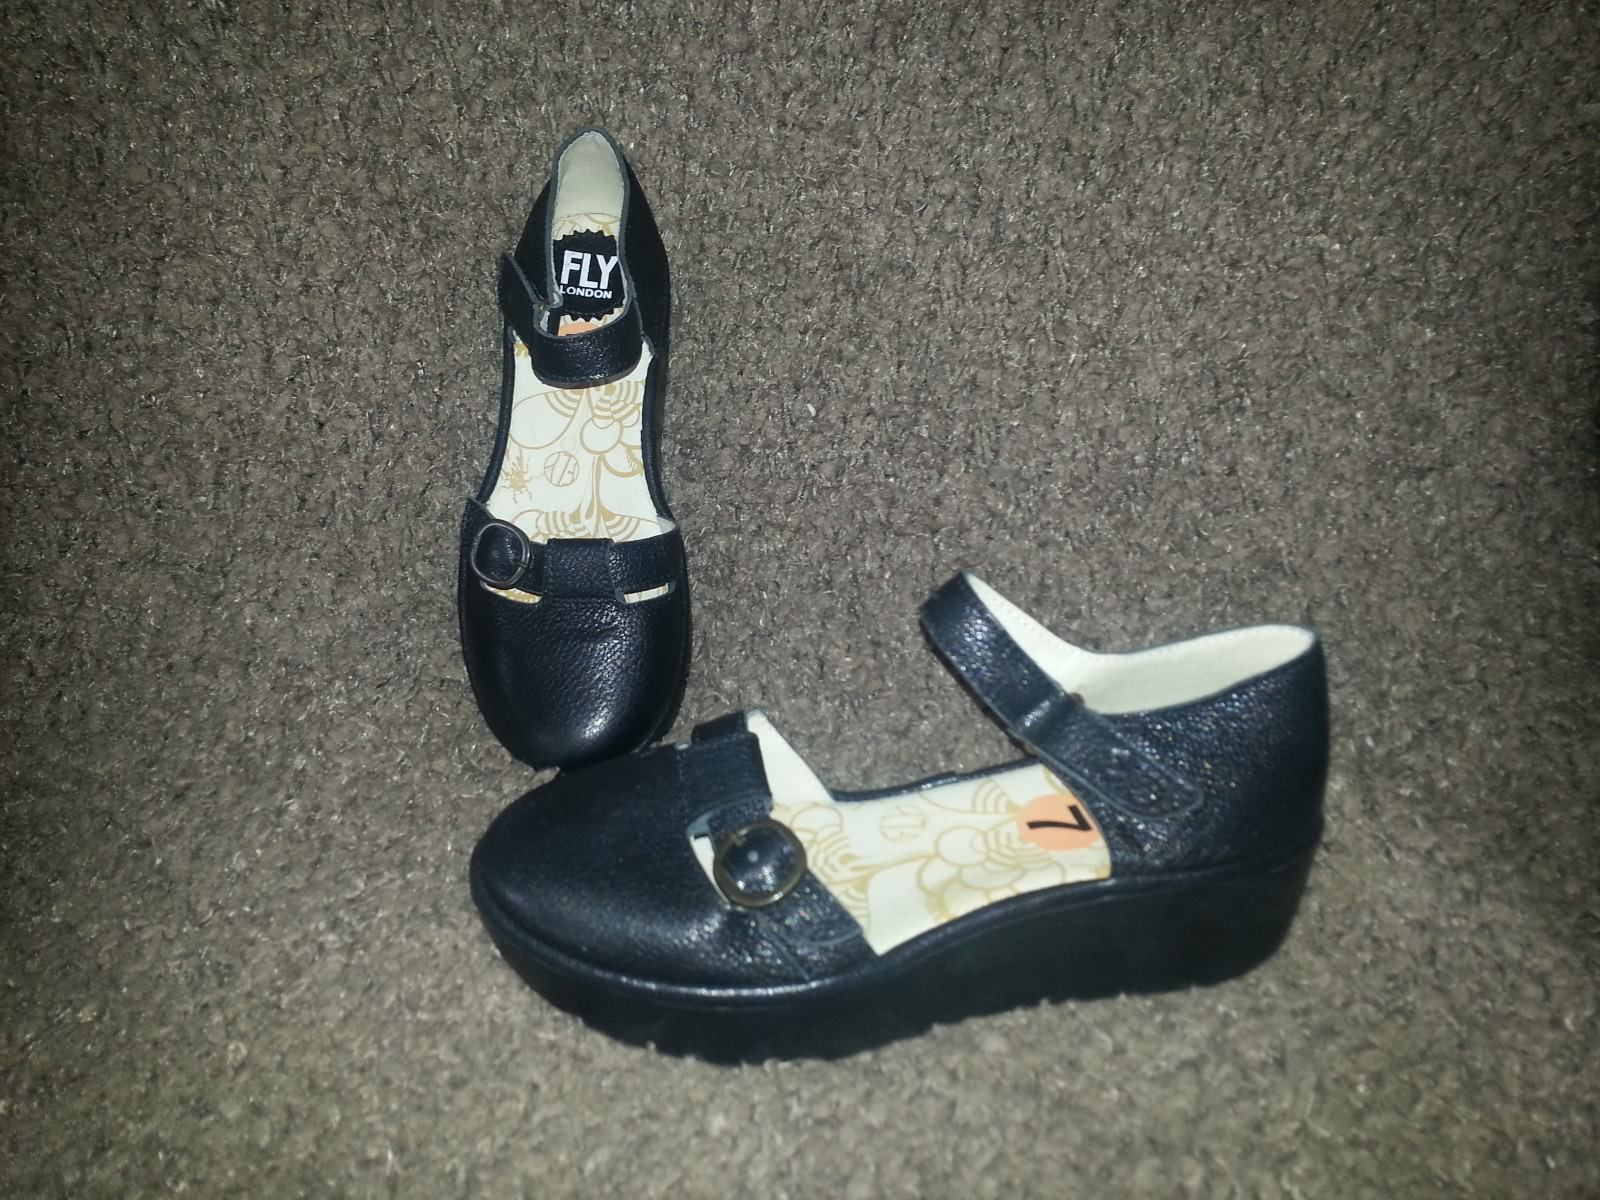 FLY LONDON-JADA-nero Leather Wedge Platform-Ankle Strap-Dimensione 37-6.5-NEW